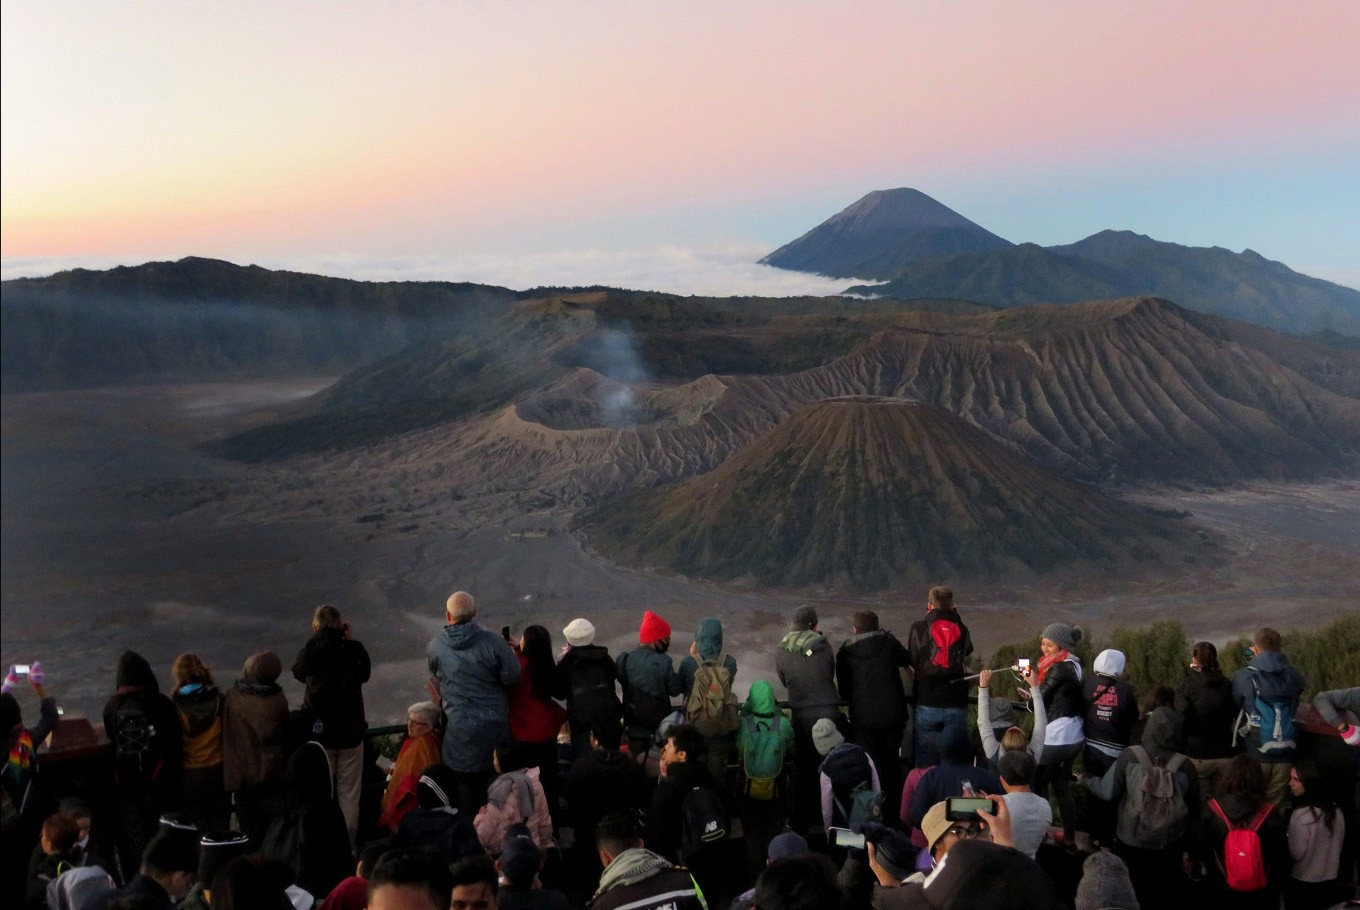 Bromo National Park collects Rp 27.3b in non-tax state revenue in 2018